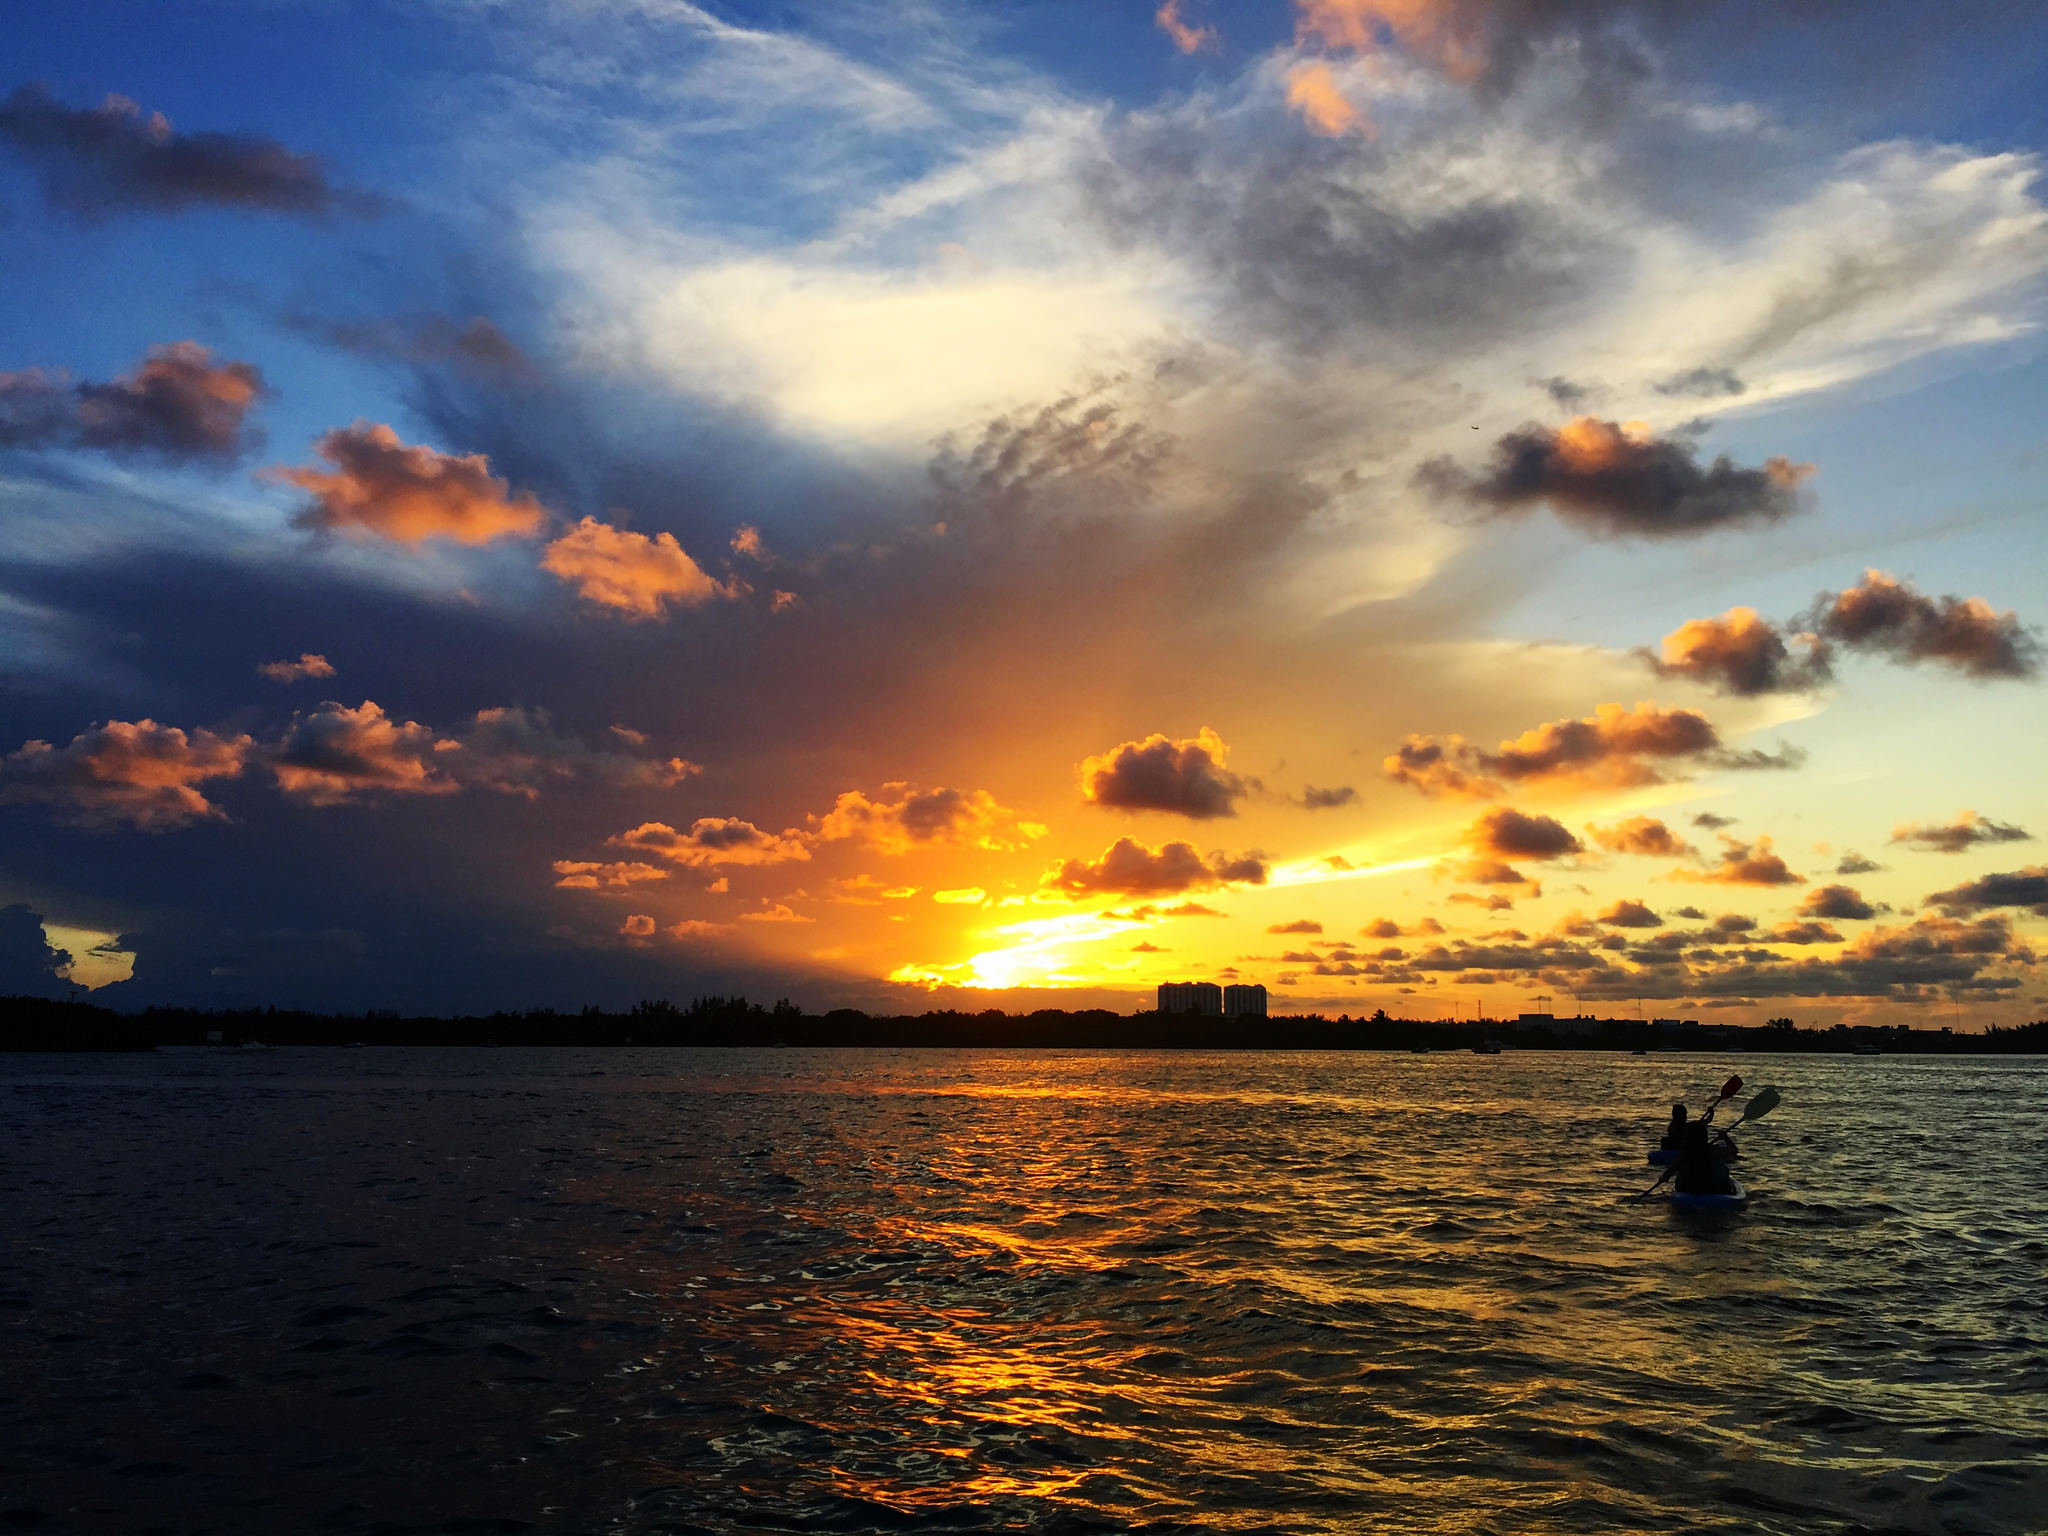 A kayaker paddles into the sunset.